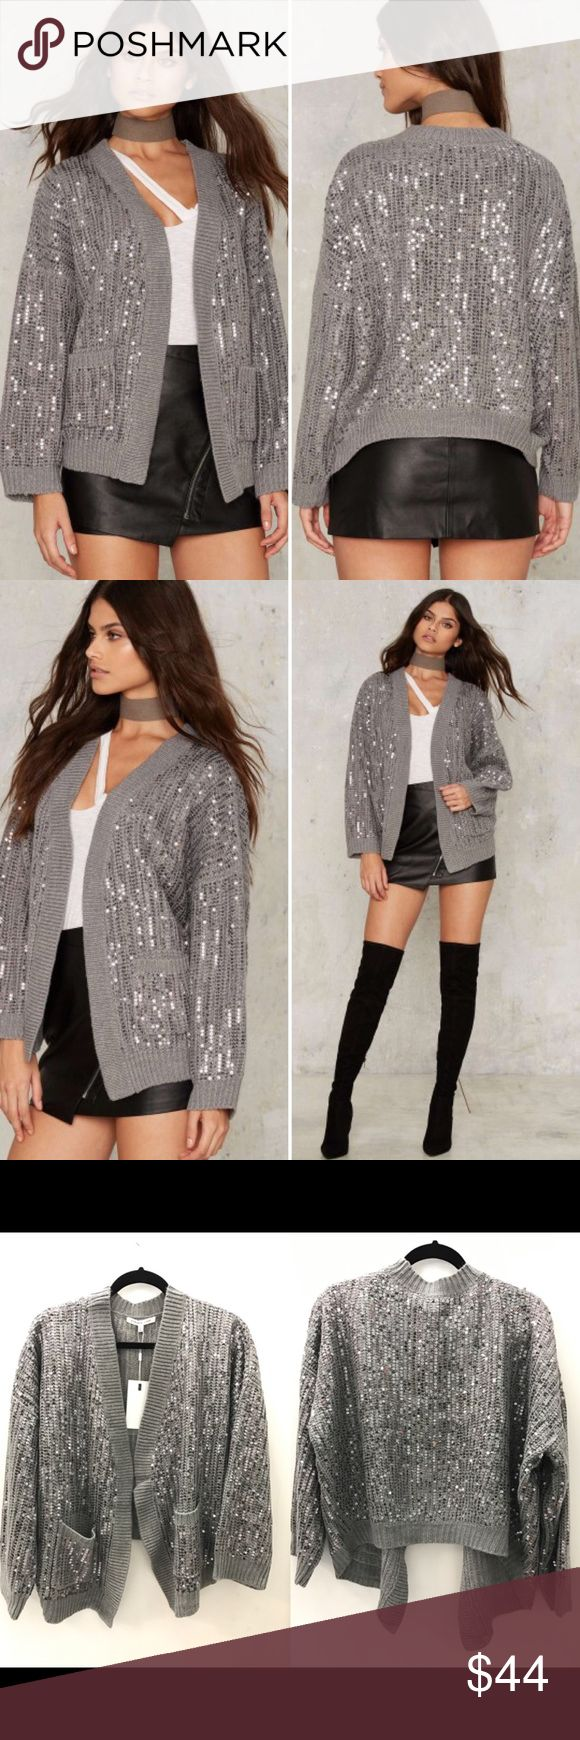 Nasty Gal Hooper Sequin Cardigan Back in a flash. The Hooper Cardigan is made in a gray ribbed knit, with an open front, relaxed silhouette, and all-over silver sequins. Made by Endless Rose, sold by Nasty Gal. Nasty Gal Sweaters Cardigans